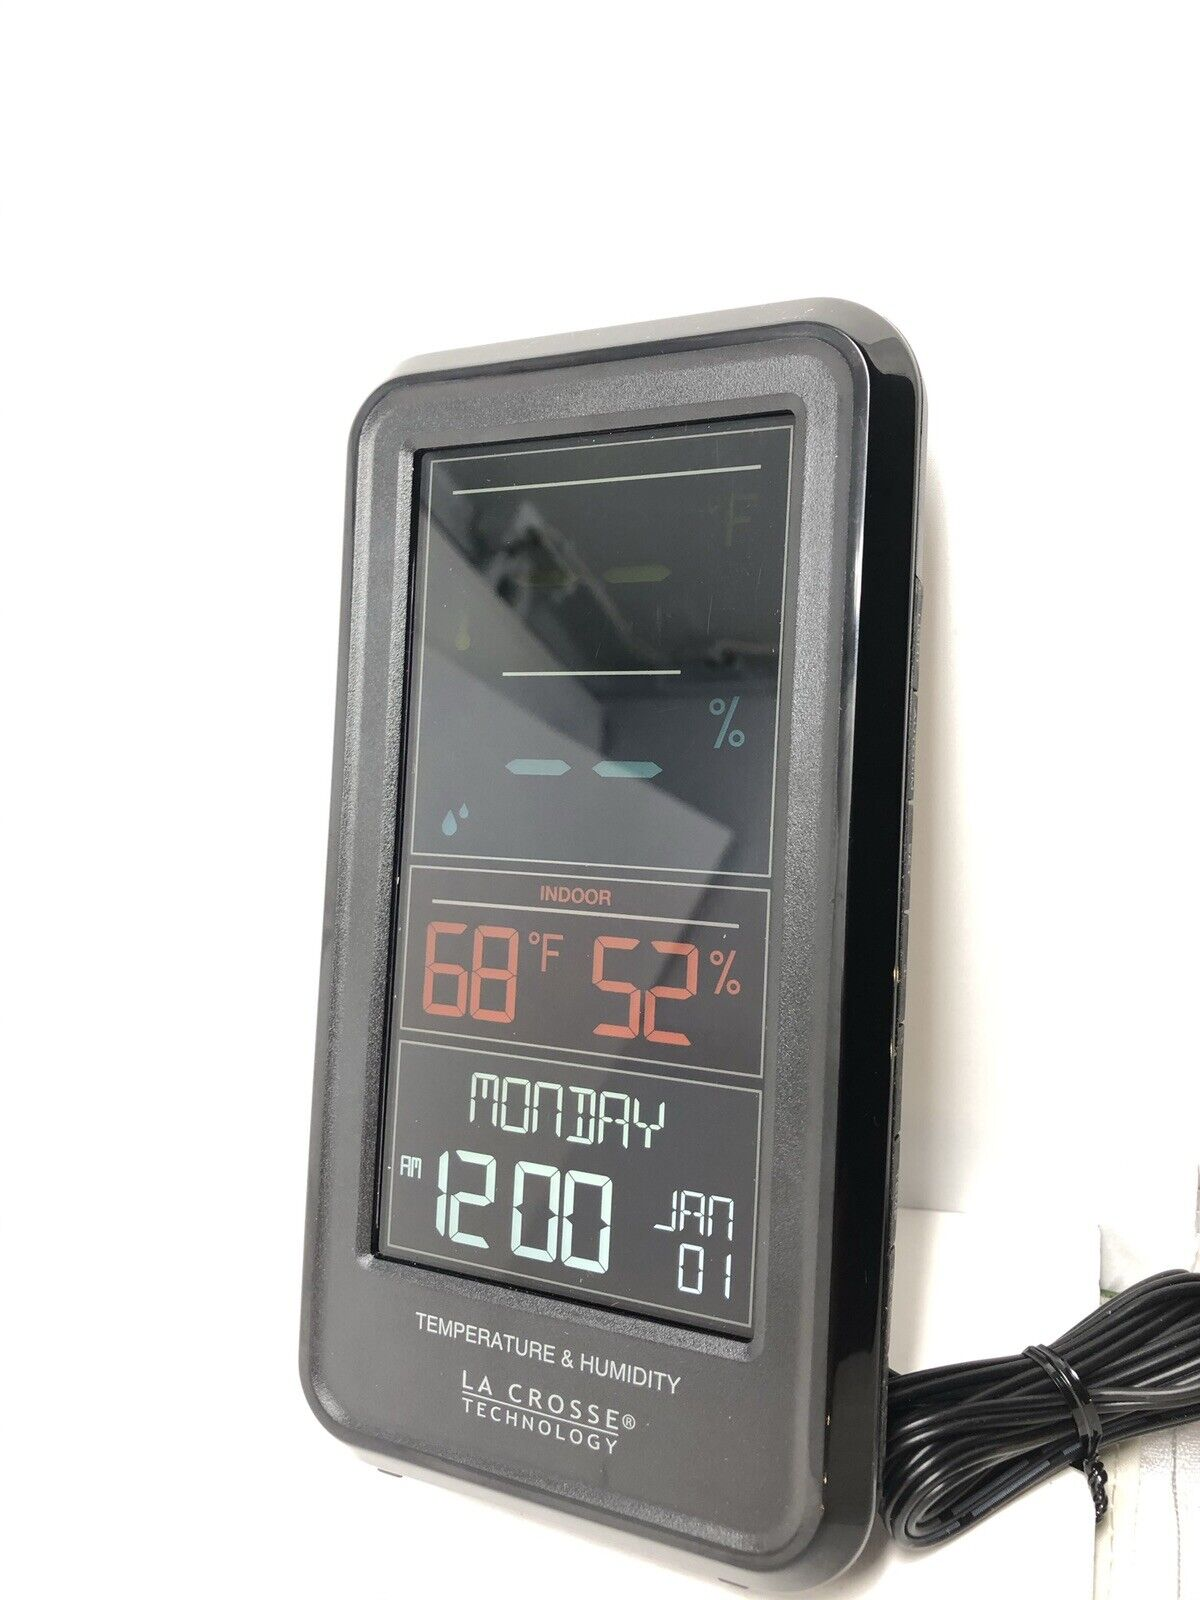 Professional house S82967 La Crosse Technology Personal Color Weather Station with TX141TH-BV2 Nib